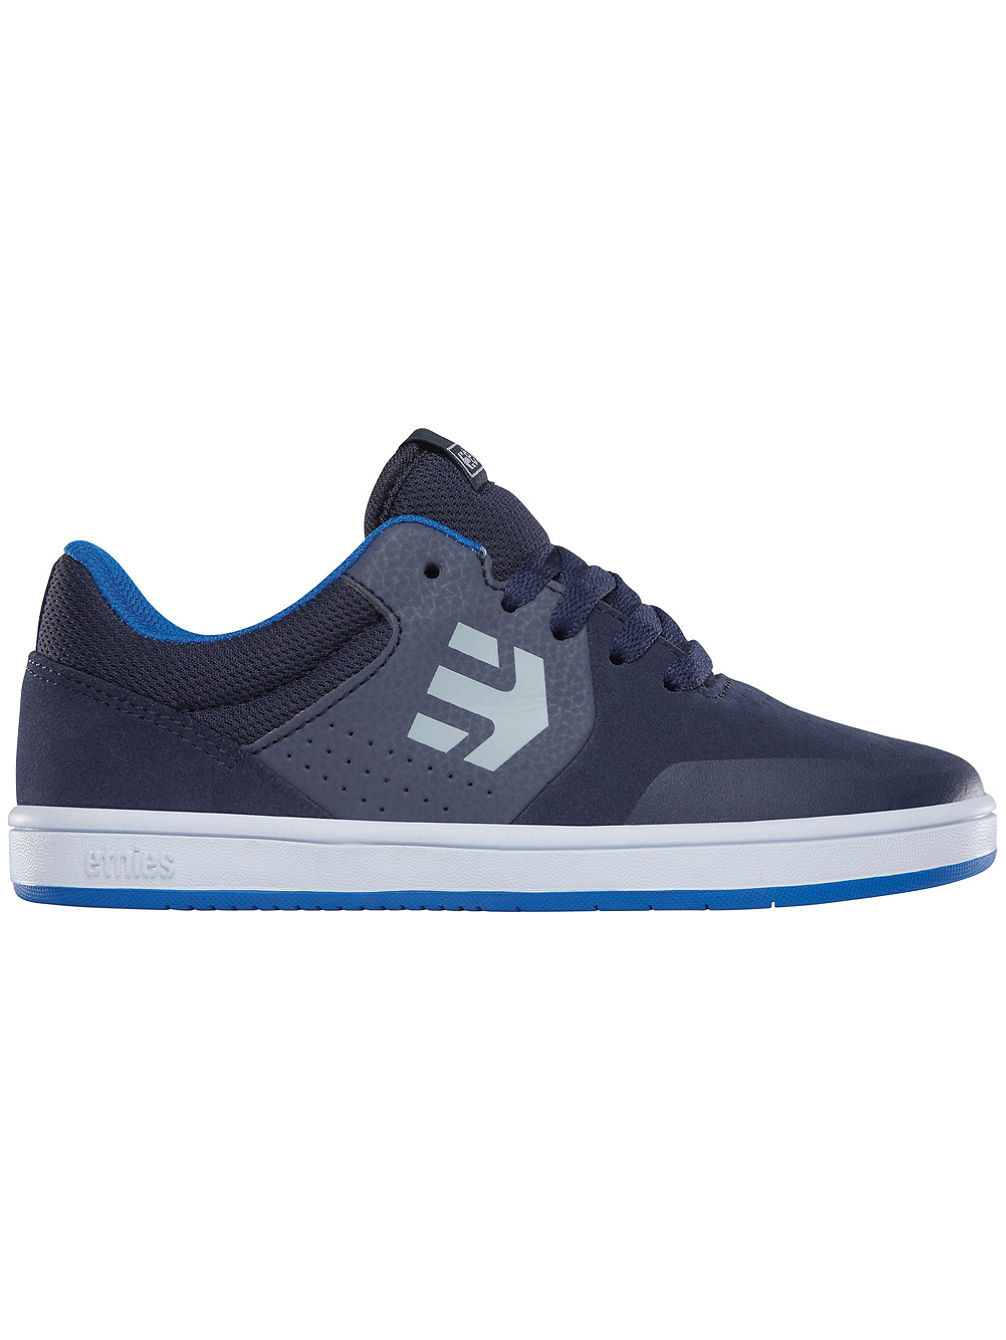 Marana Skate Shoes Boys